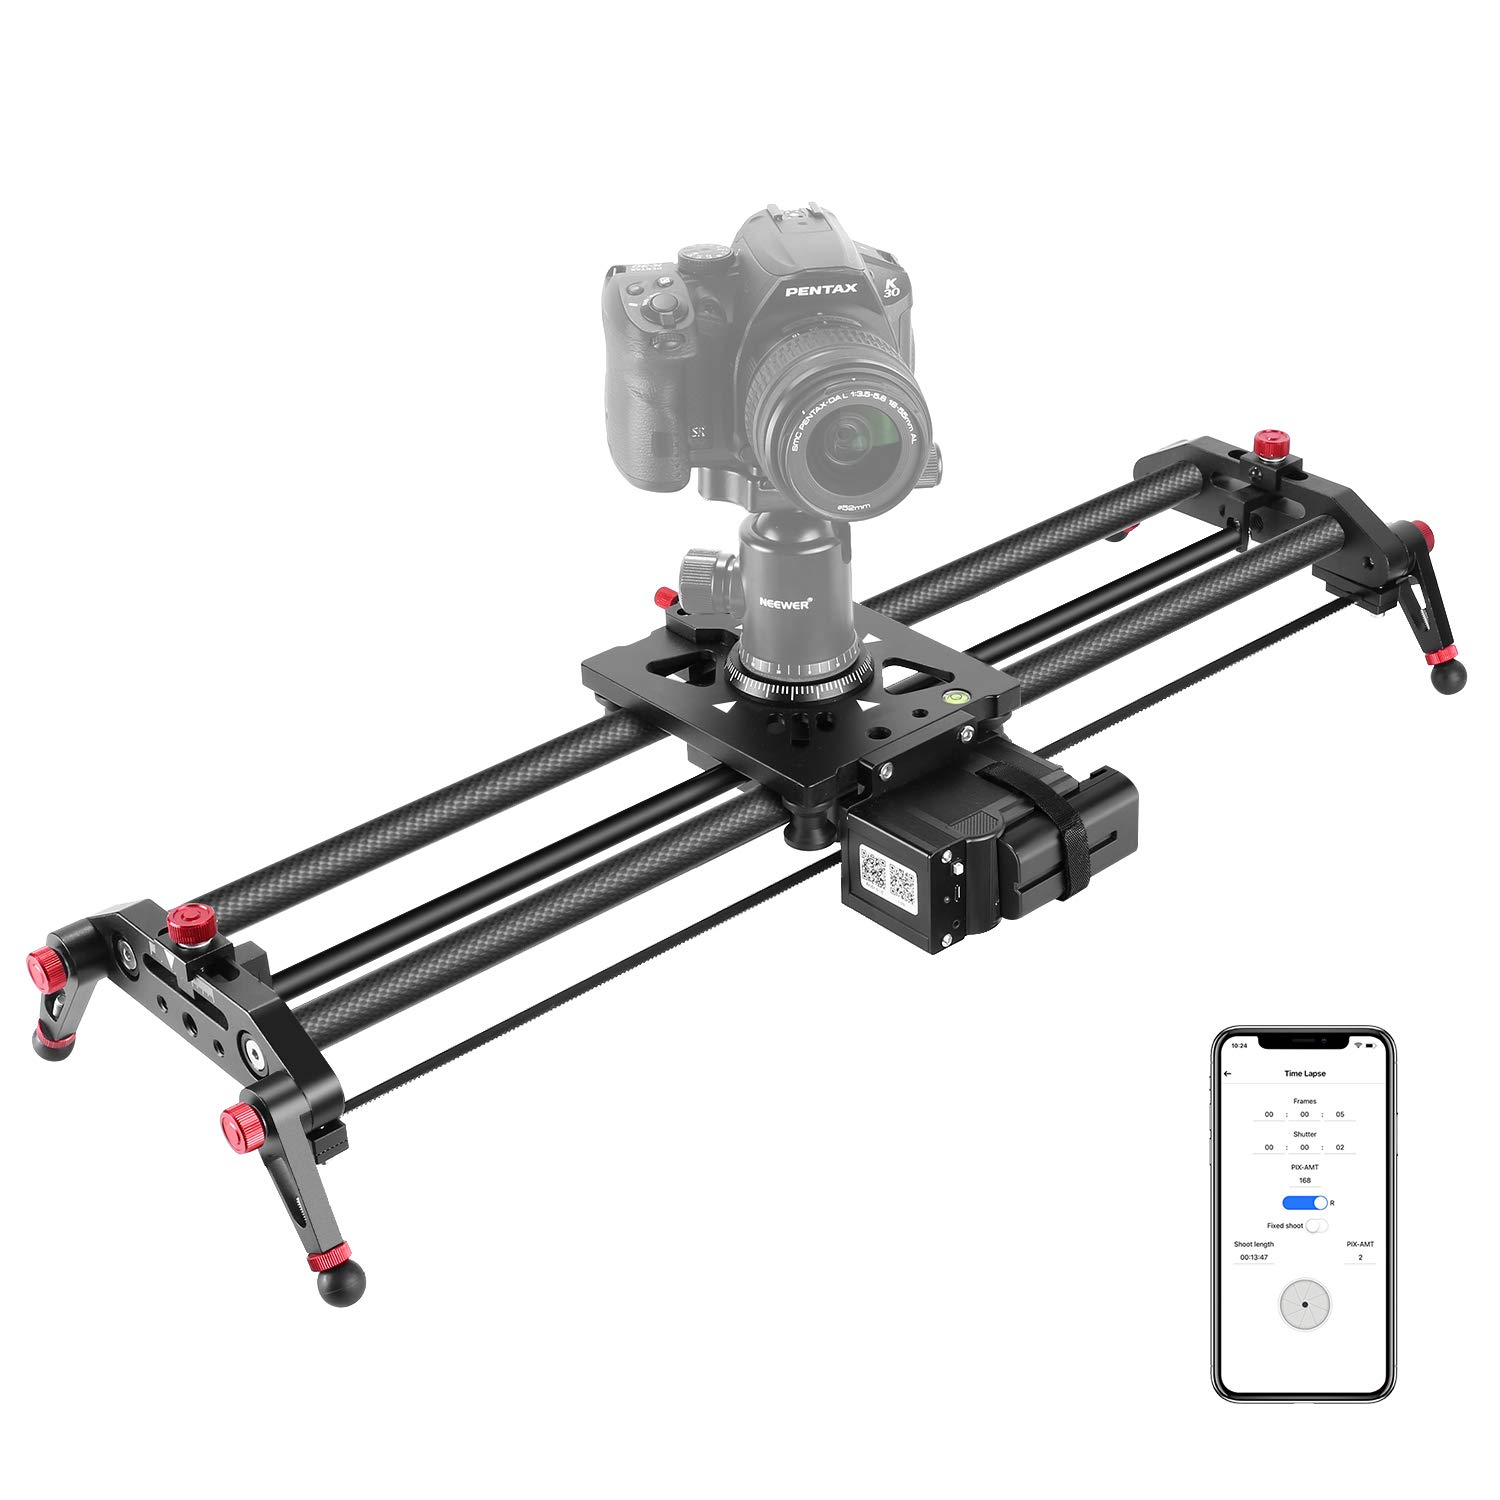 Neewer Camera Slider Motorized, 31.5-inch APP Control Carbon Fiber Track Dolly Rail with Time Lapse Video Shot Follow Focus Shot and 120 Degree Panoramic Shooting for DSLR Cameras, Load up to 22 lbs by Neewer